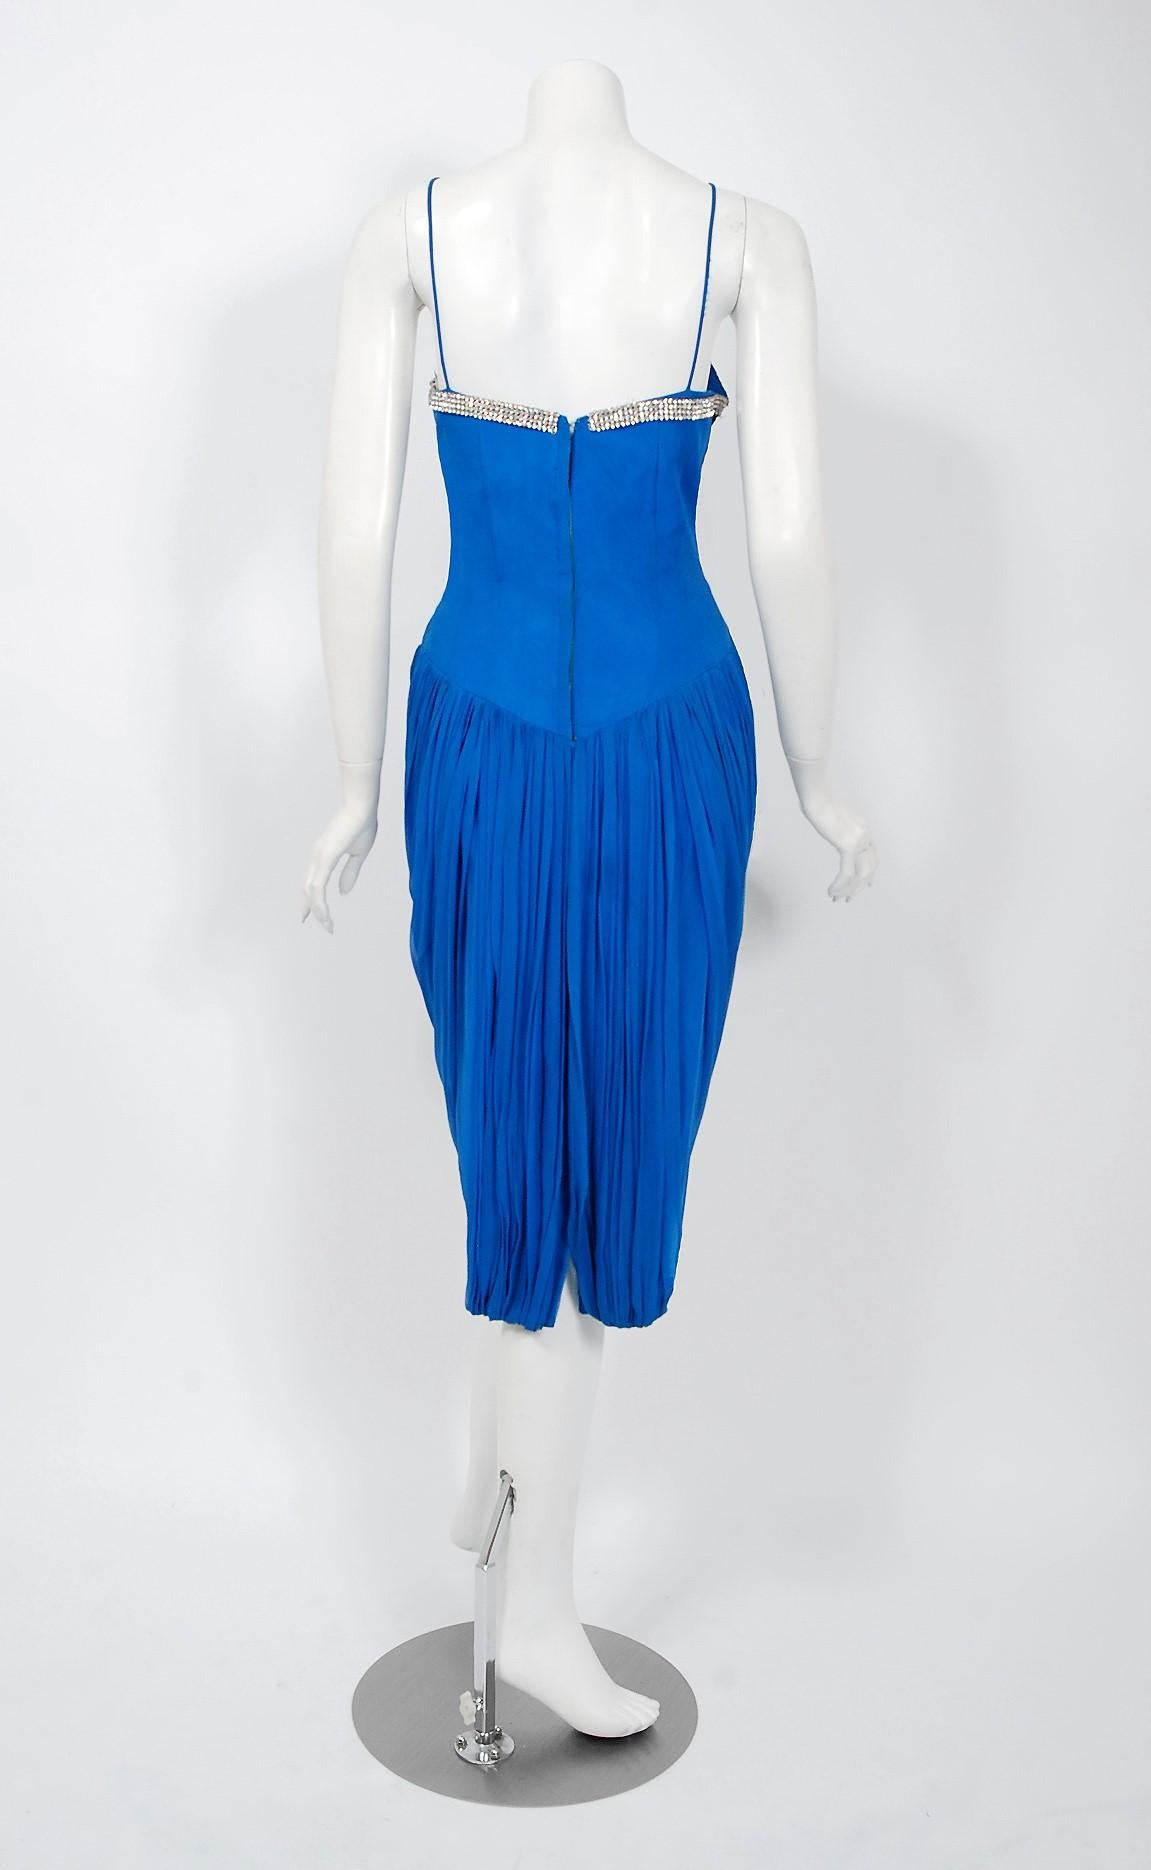 Sapphire Blue Ball Gown Dresses On Mannequins